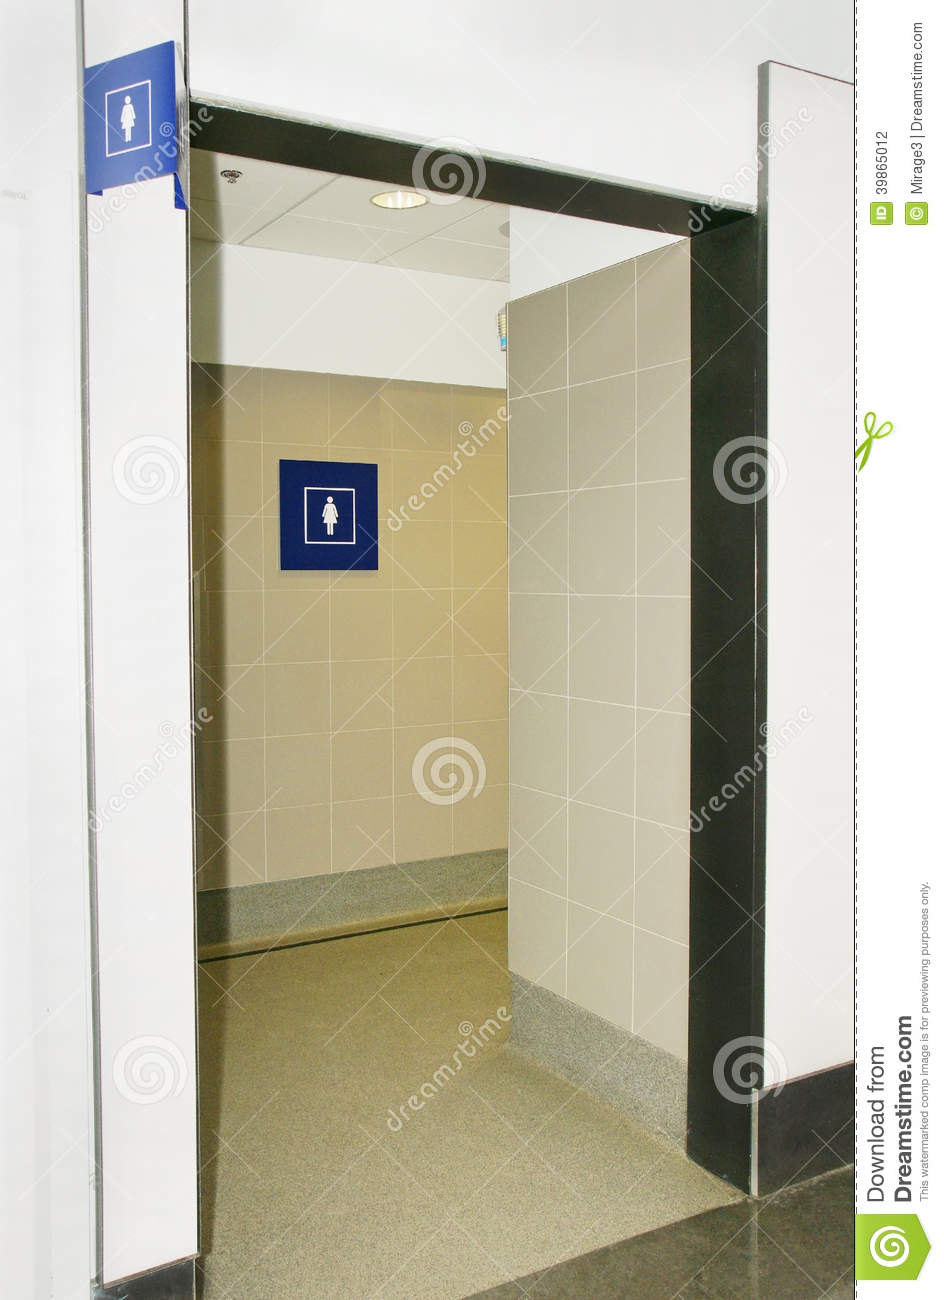 Women Bathroom Stock Photo Image 39865012